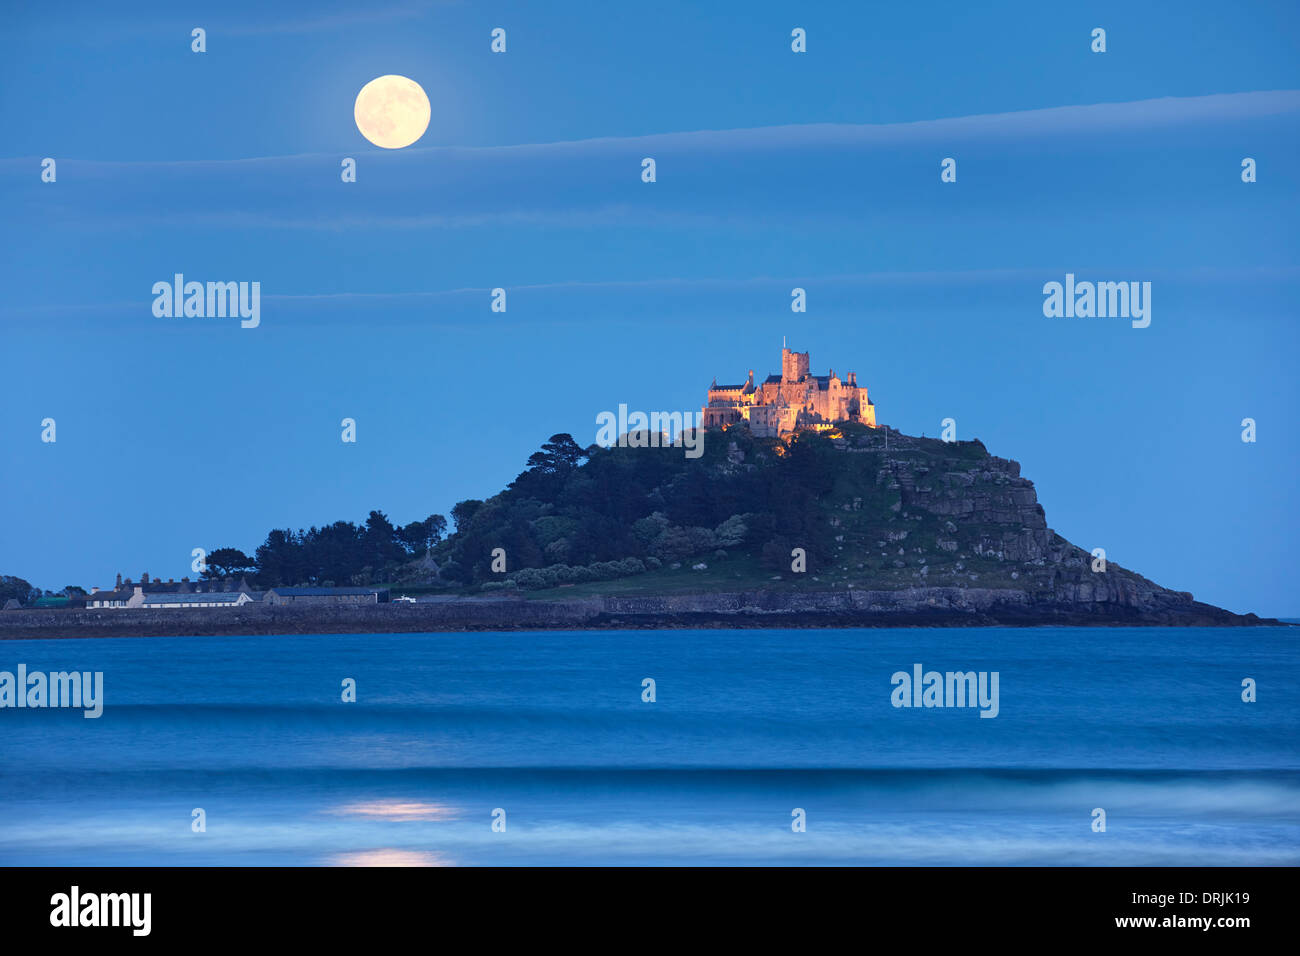 2013 s'élevant au-dessus de Supermoon St Michael's Mount, Cornwall Photo Stock